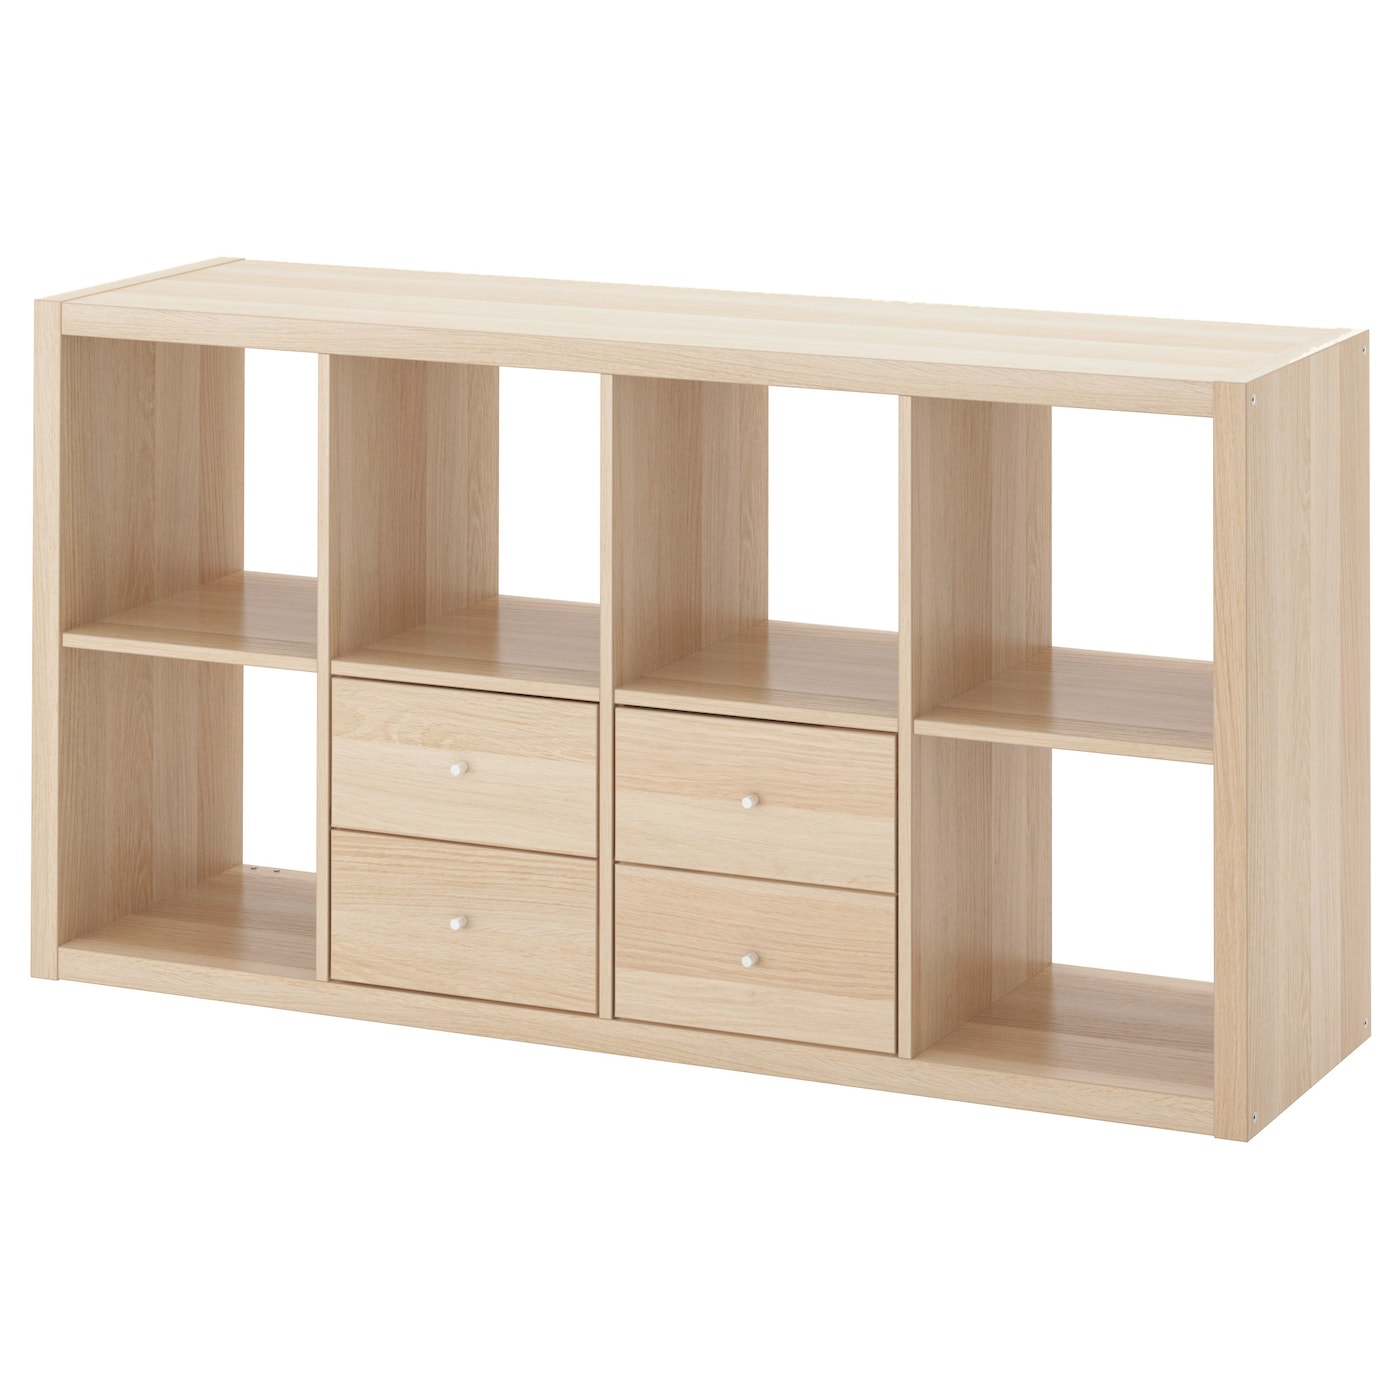 Kallax shelving unit with 2 inserts white stained oak for Meuble 9 cases ikea